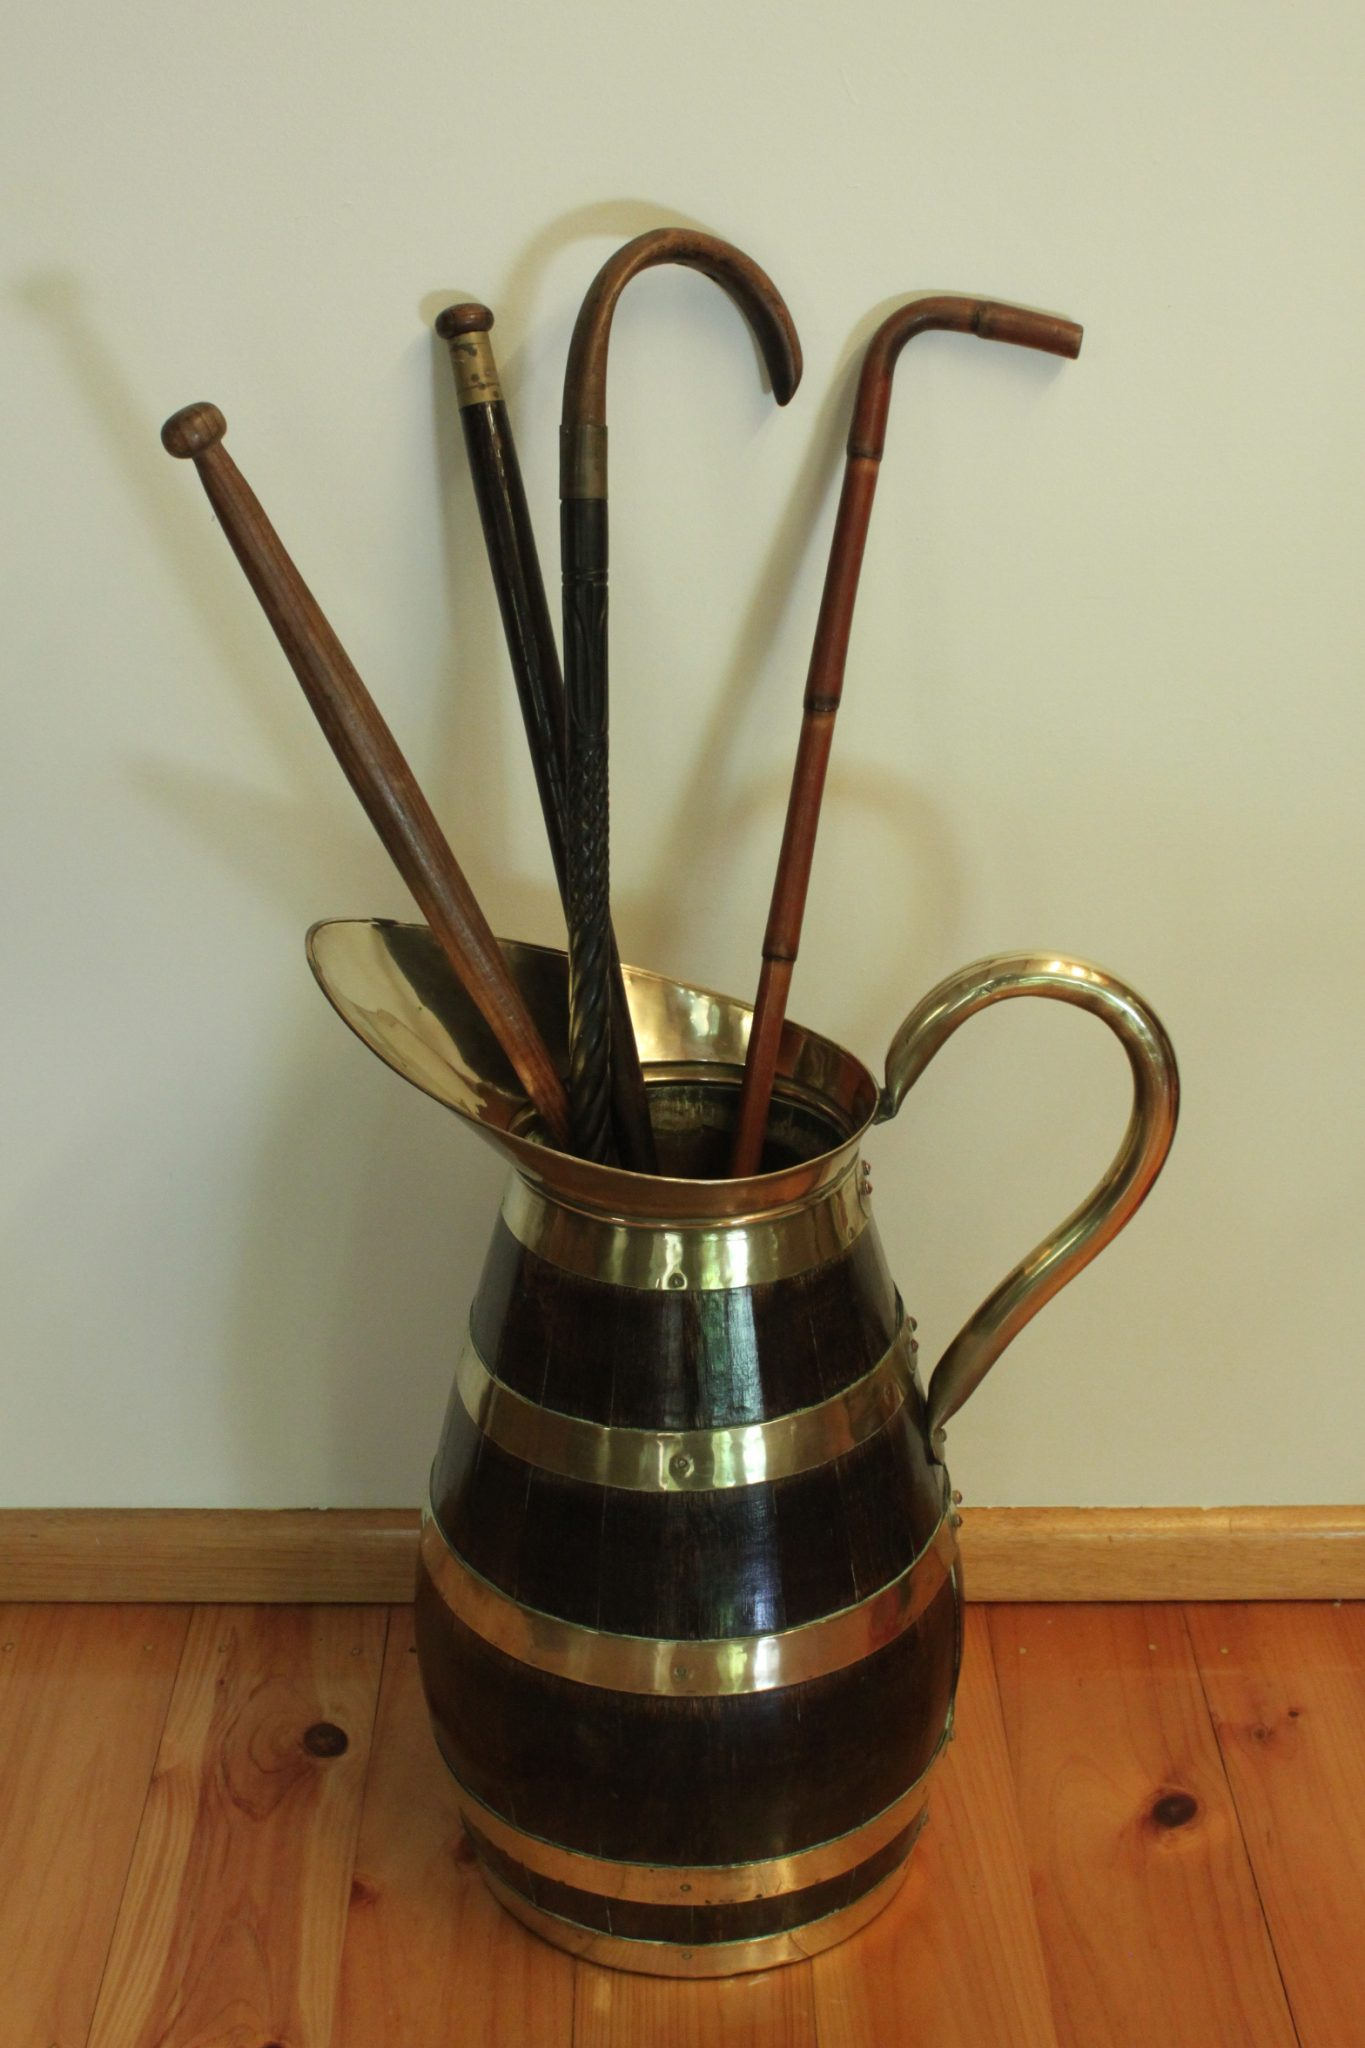 Oak brass bound stick or umbrella stand in the shape of a jug